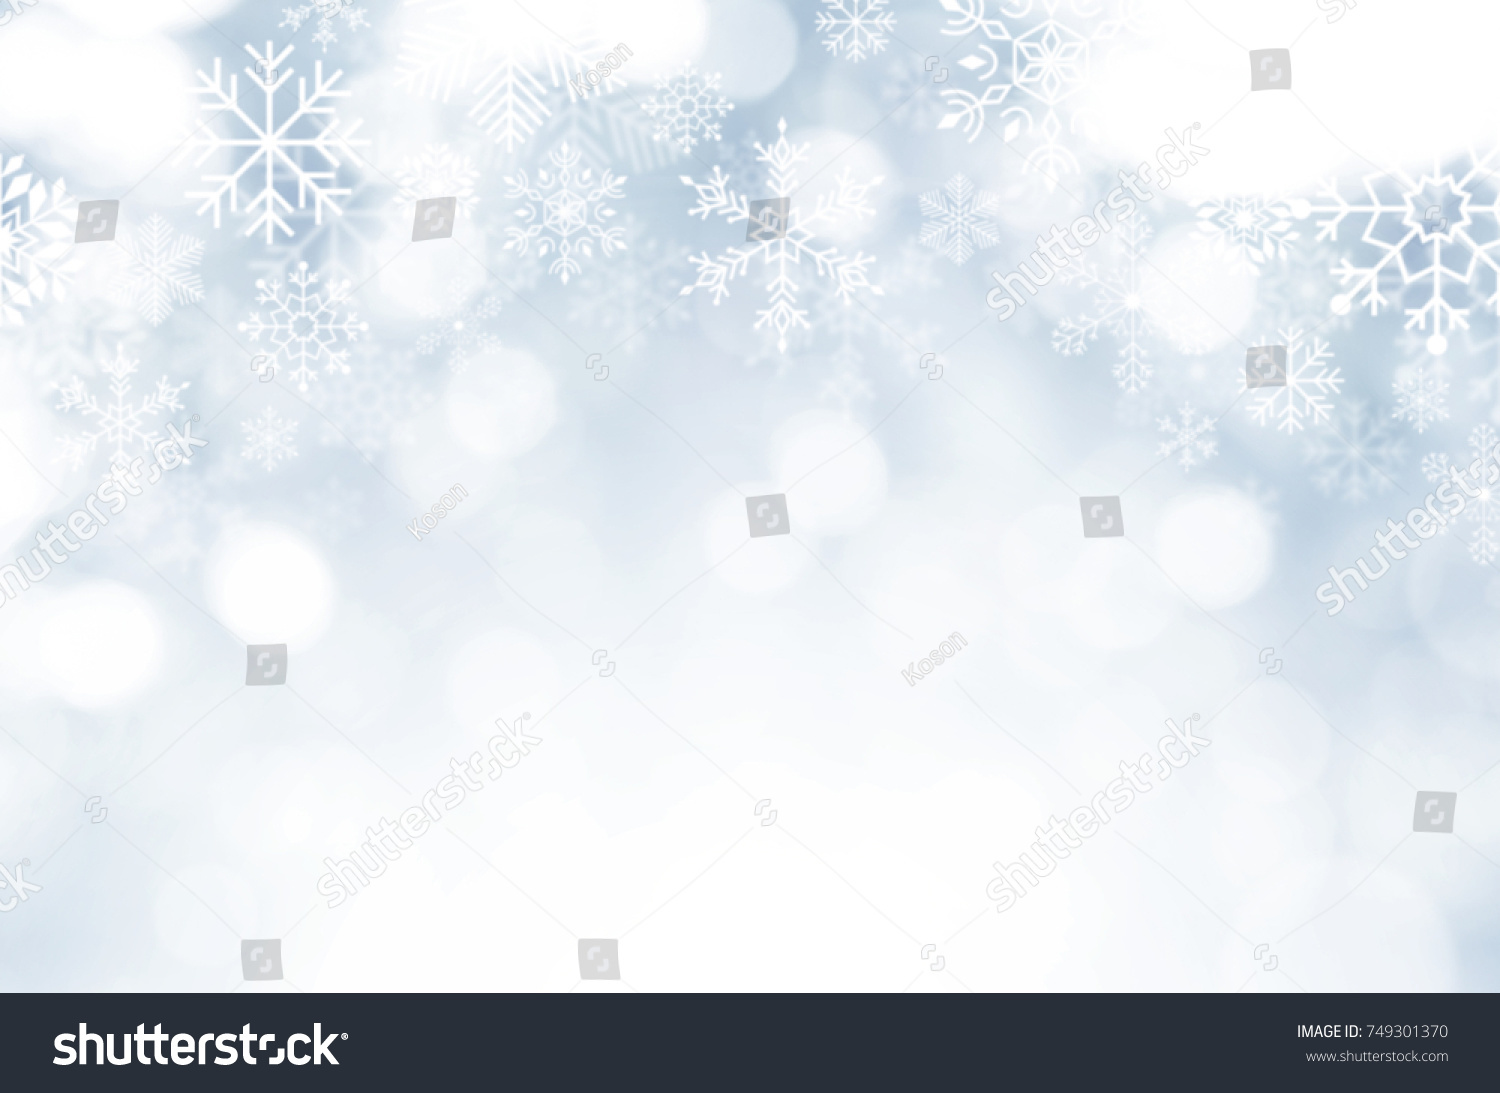 christmas and new year theme background light blue blurred abstract background with snowflake